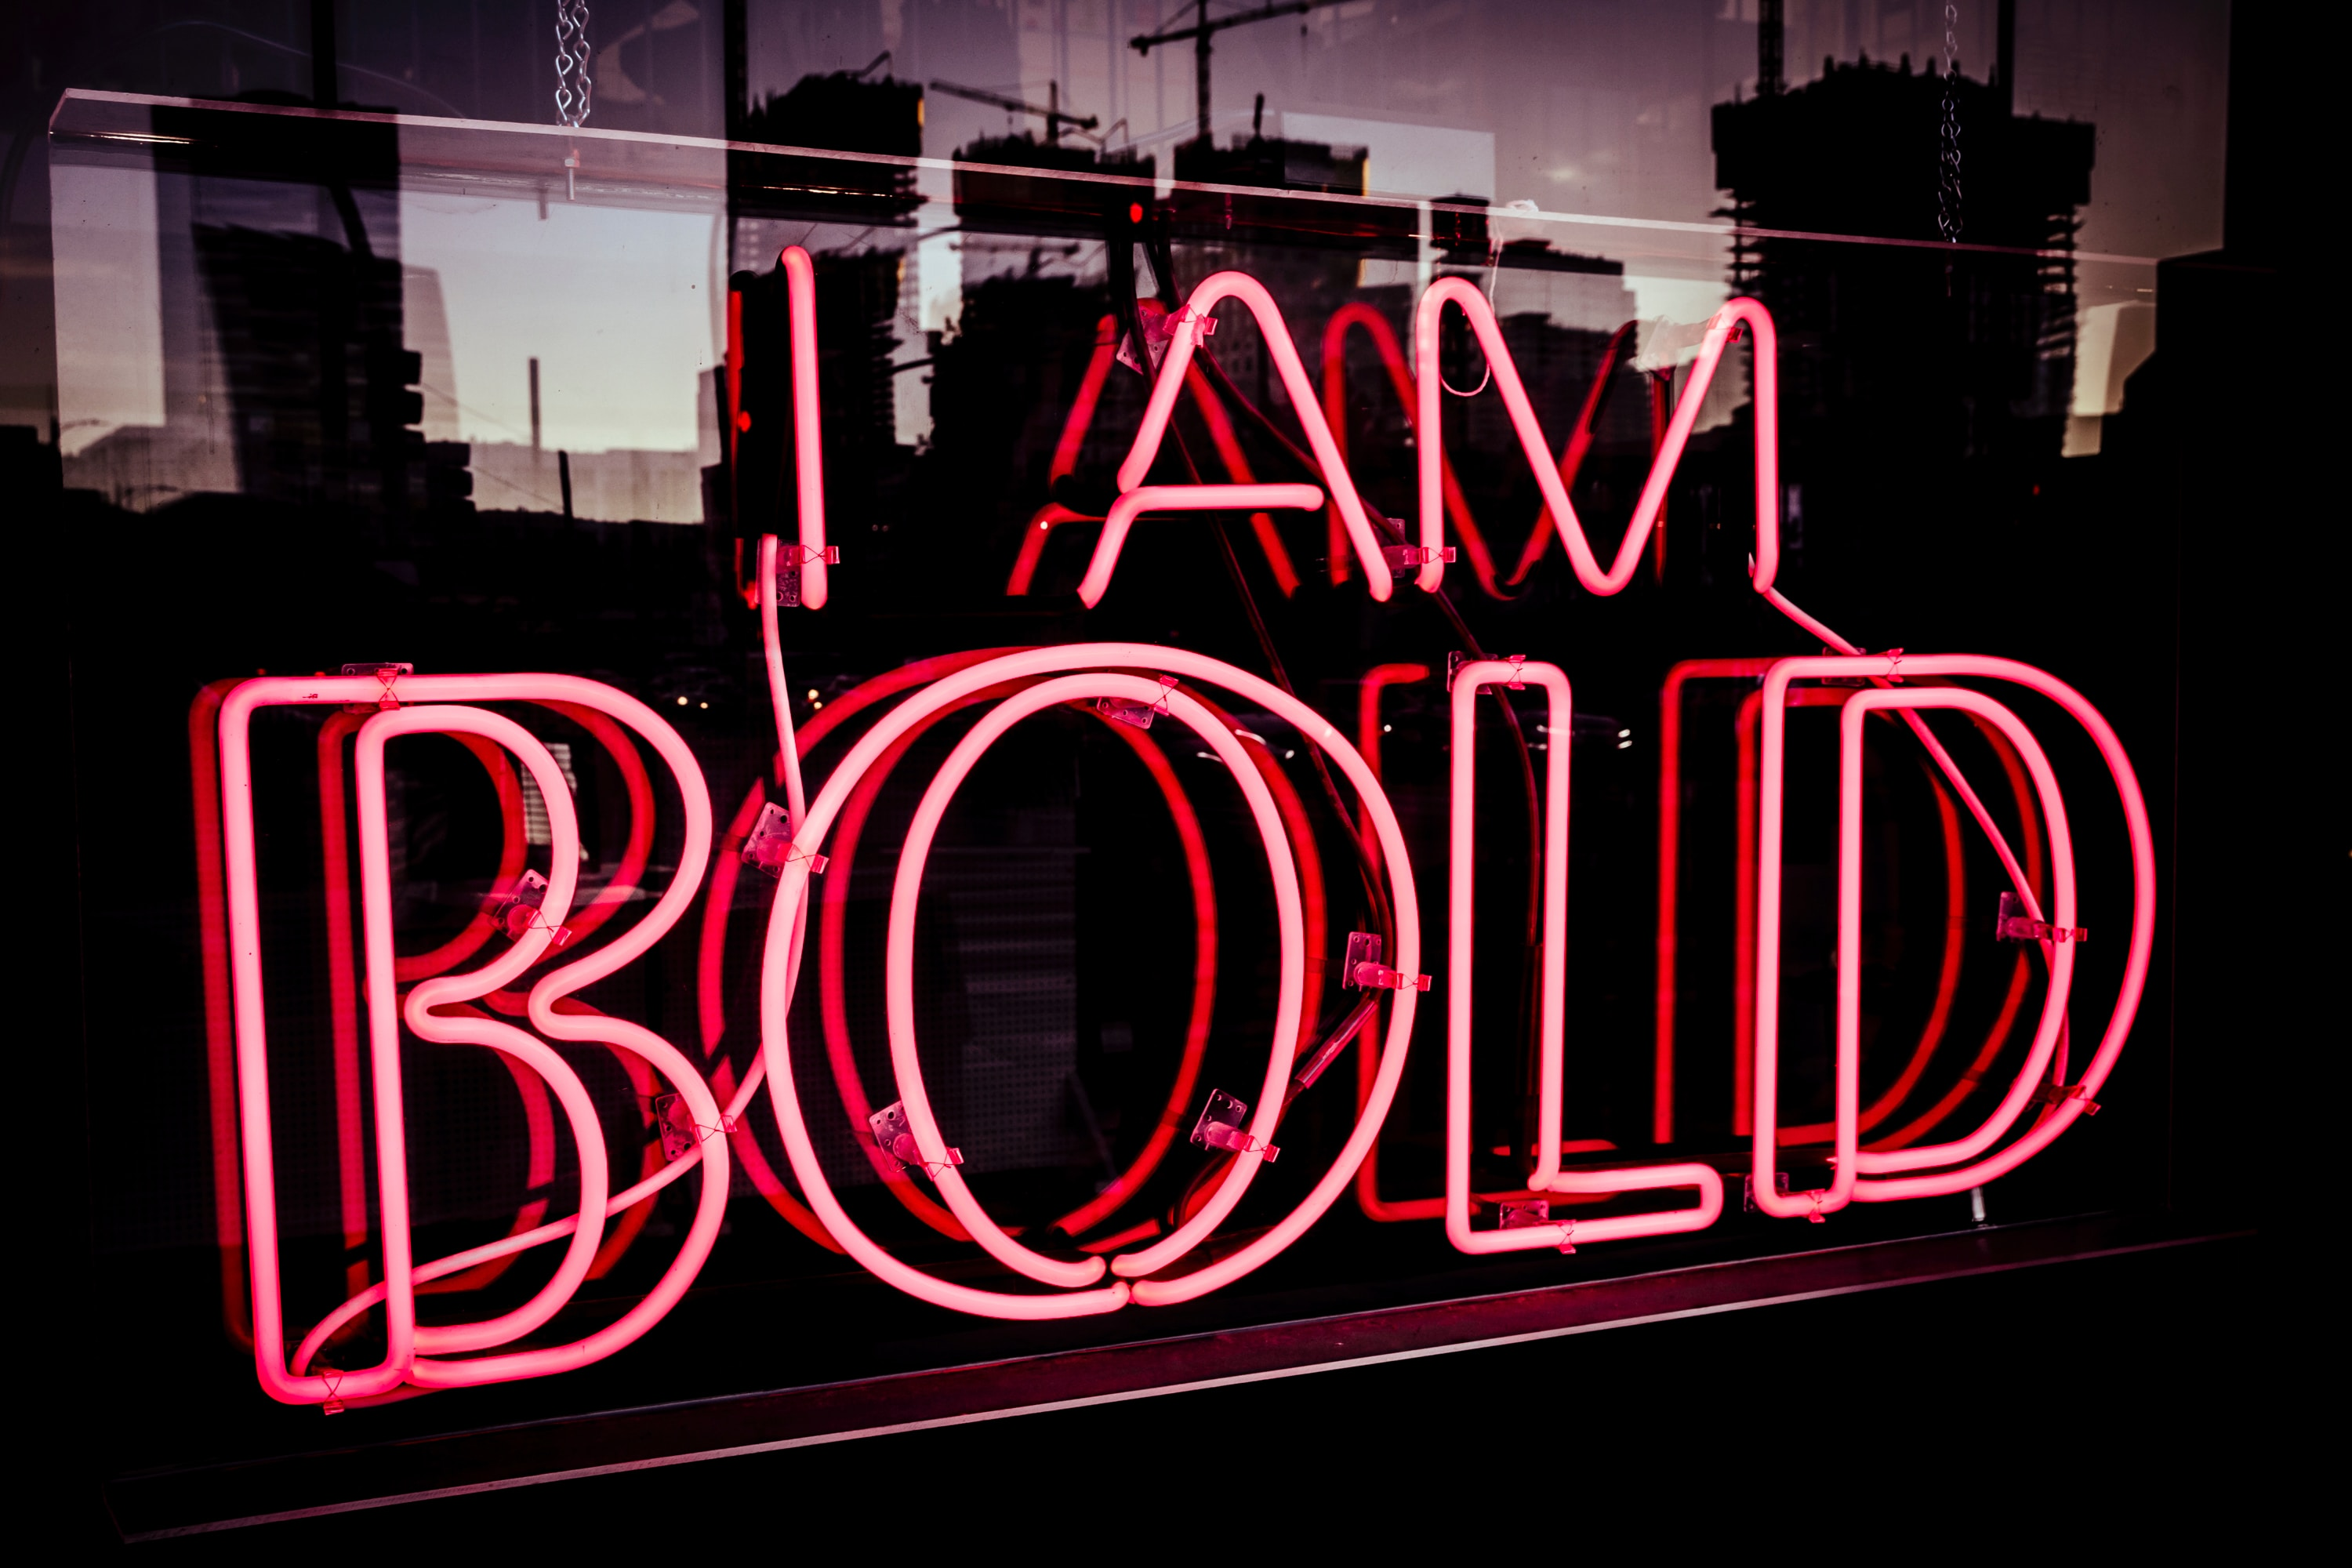 Being bold, brave and courageous